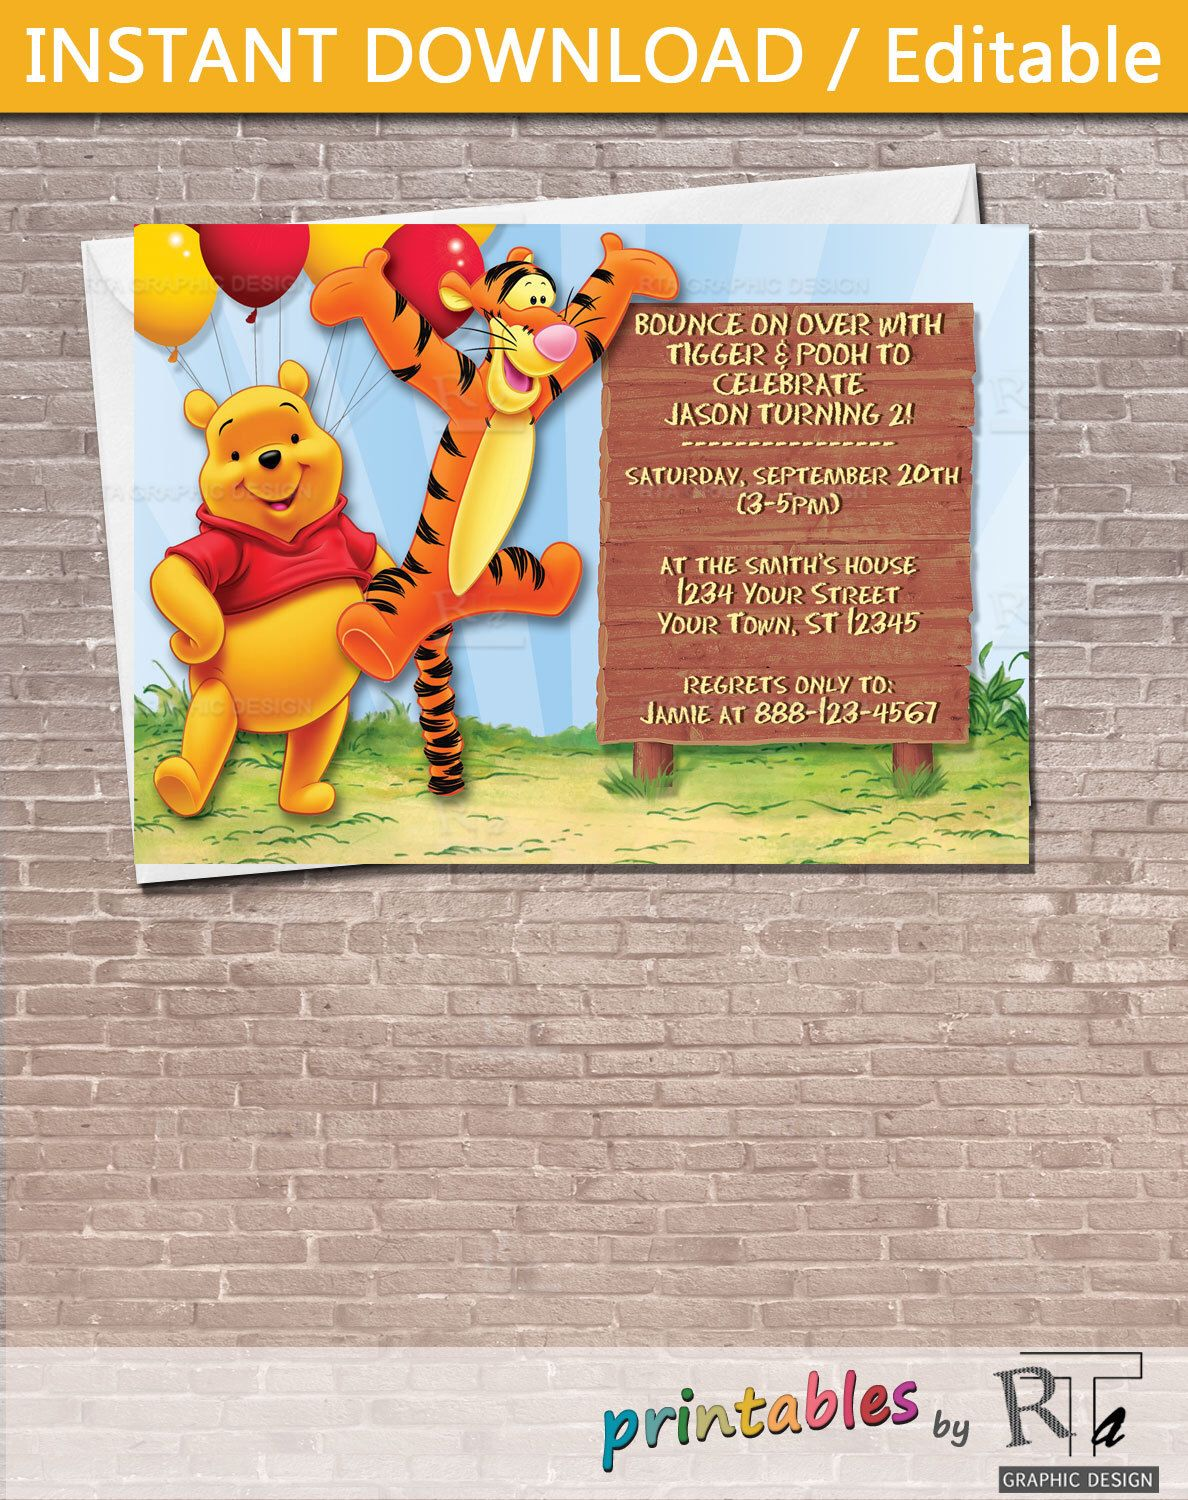 Winnie the Pooh and Tigger Party Invitation Download Editable – Tigger Birthday Party Invitations